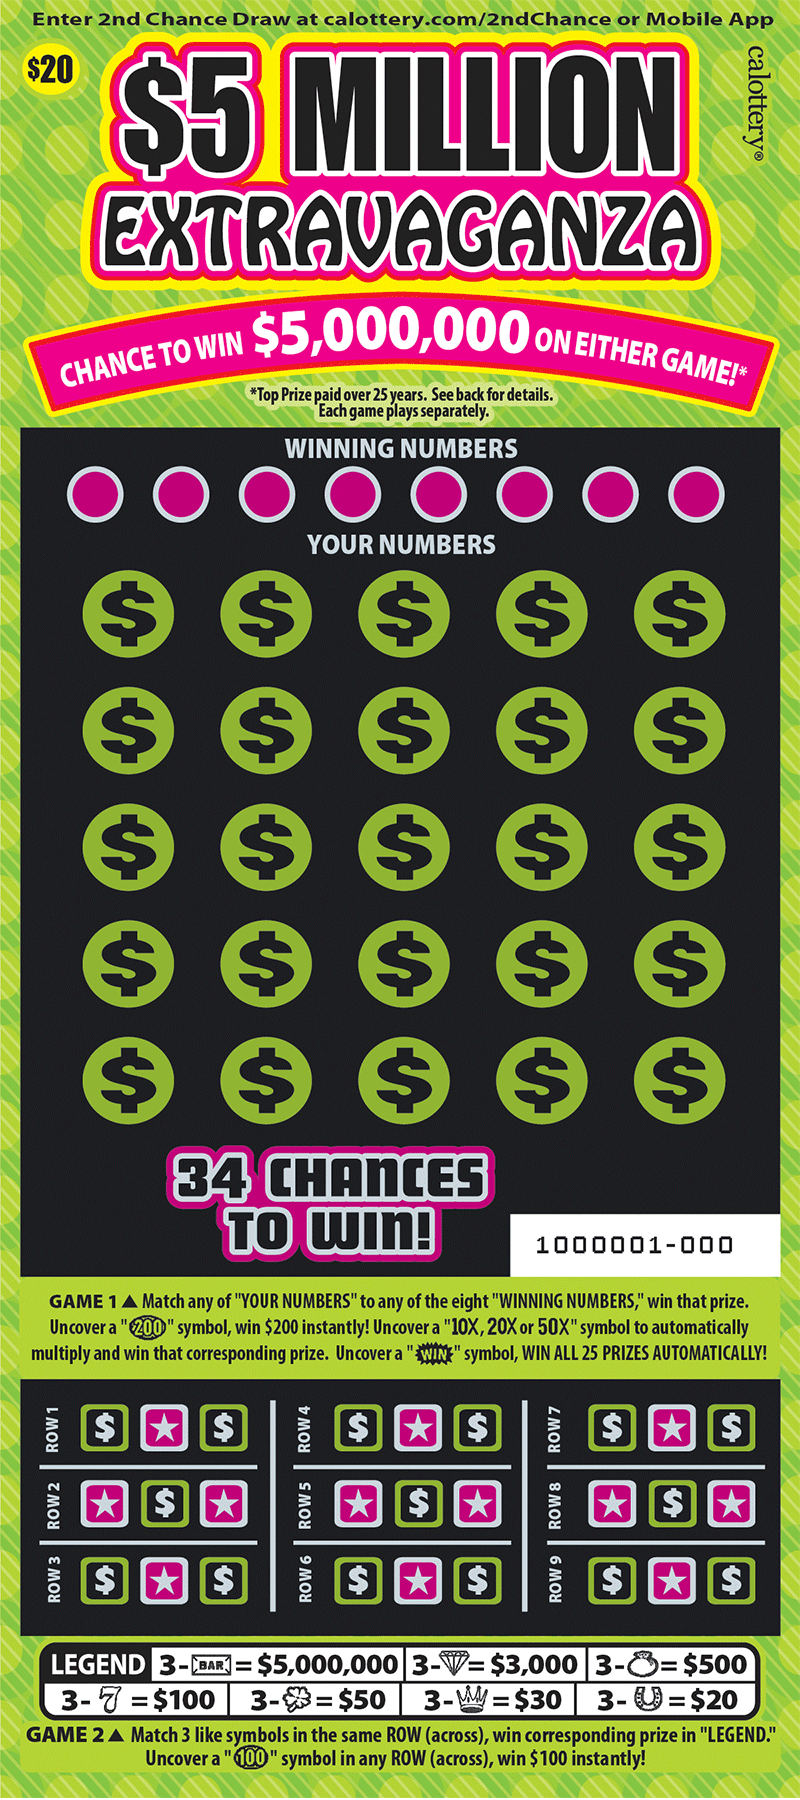 $20 $5 Million Extravaganza unscratched ticket